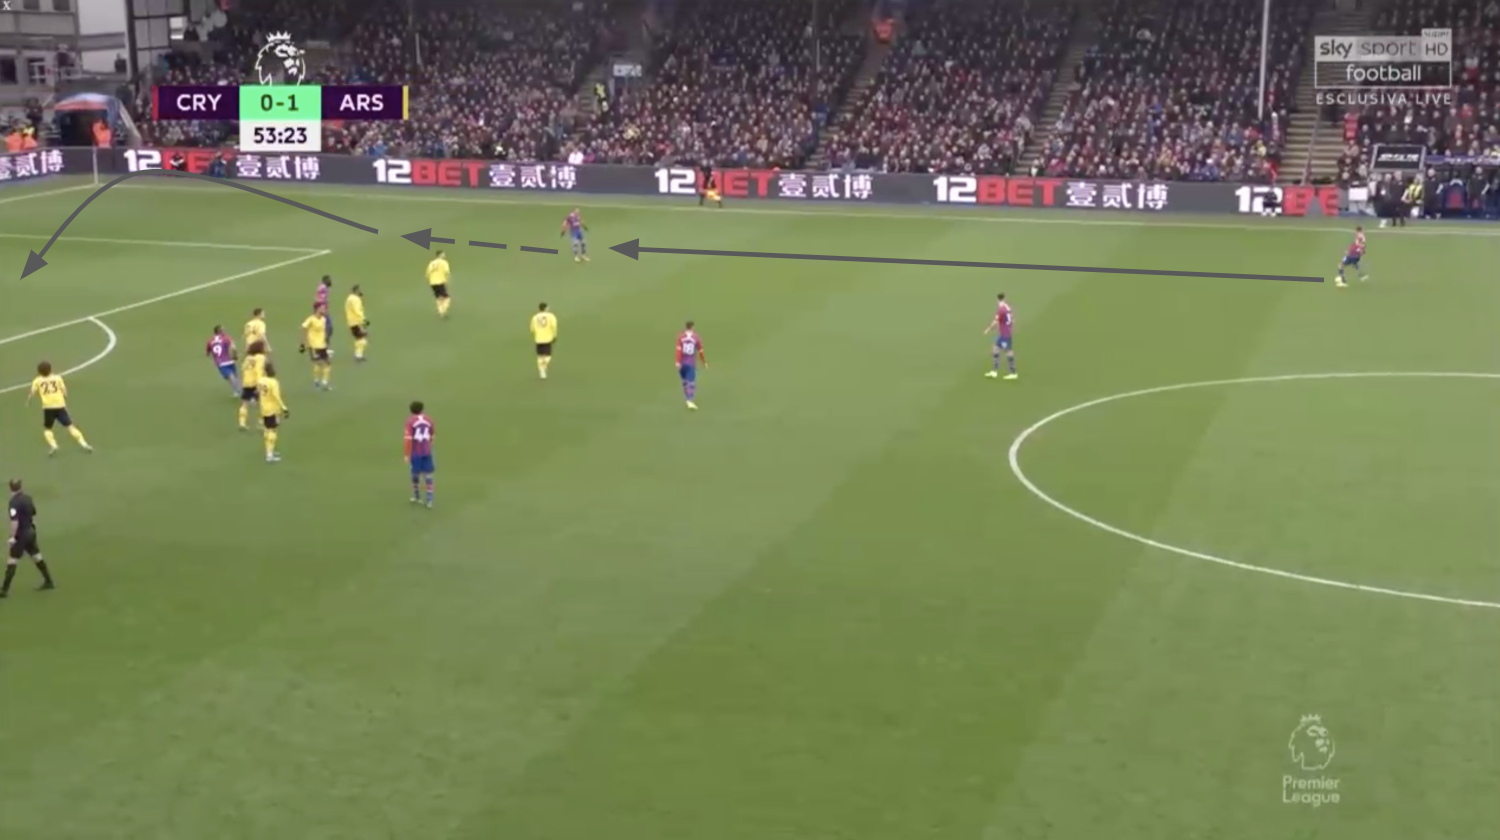 Premier League 2019/20: Arsenal vs Crystal Palace - tactical analysis tactics